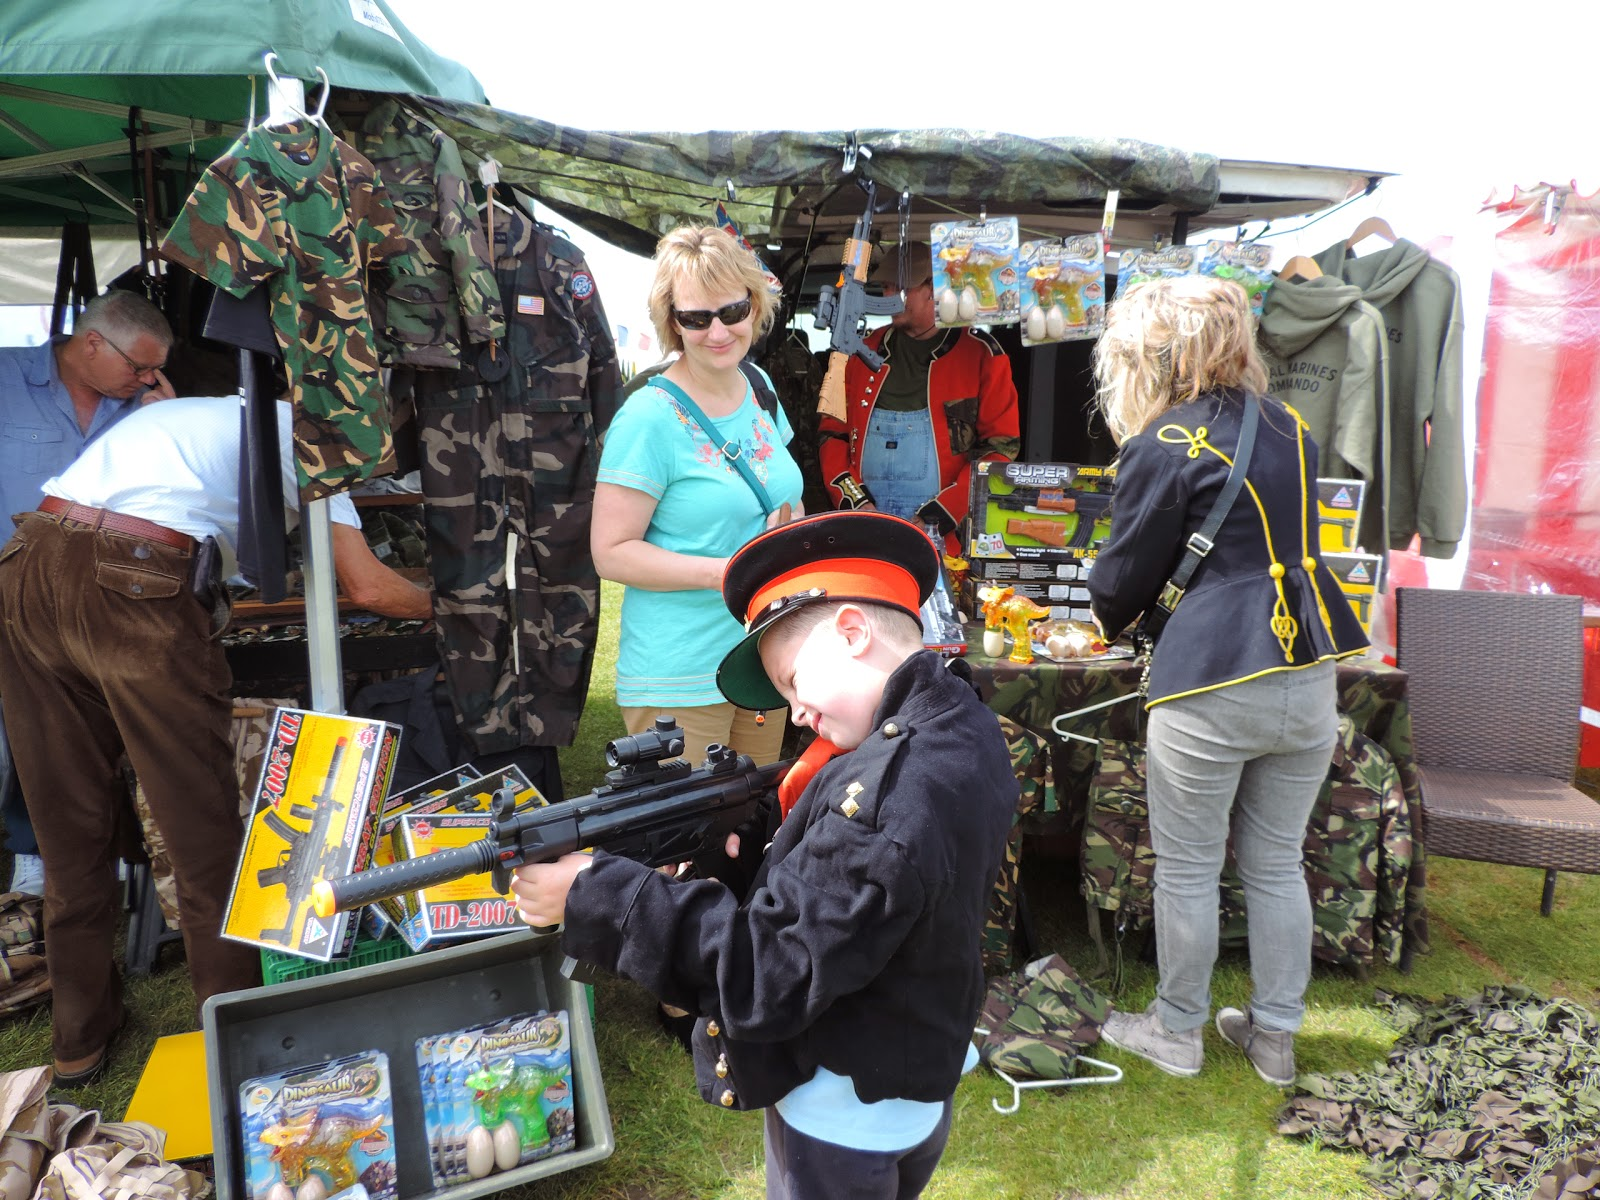 arms and militaria supplies stall at portsmouth d-day memorial celebrations